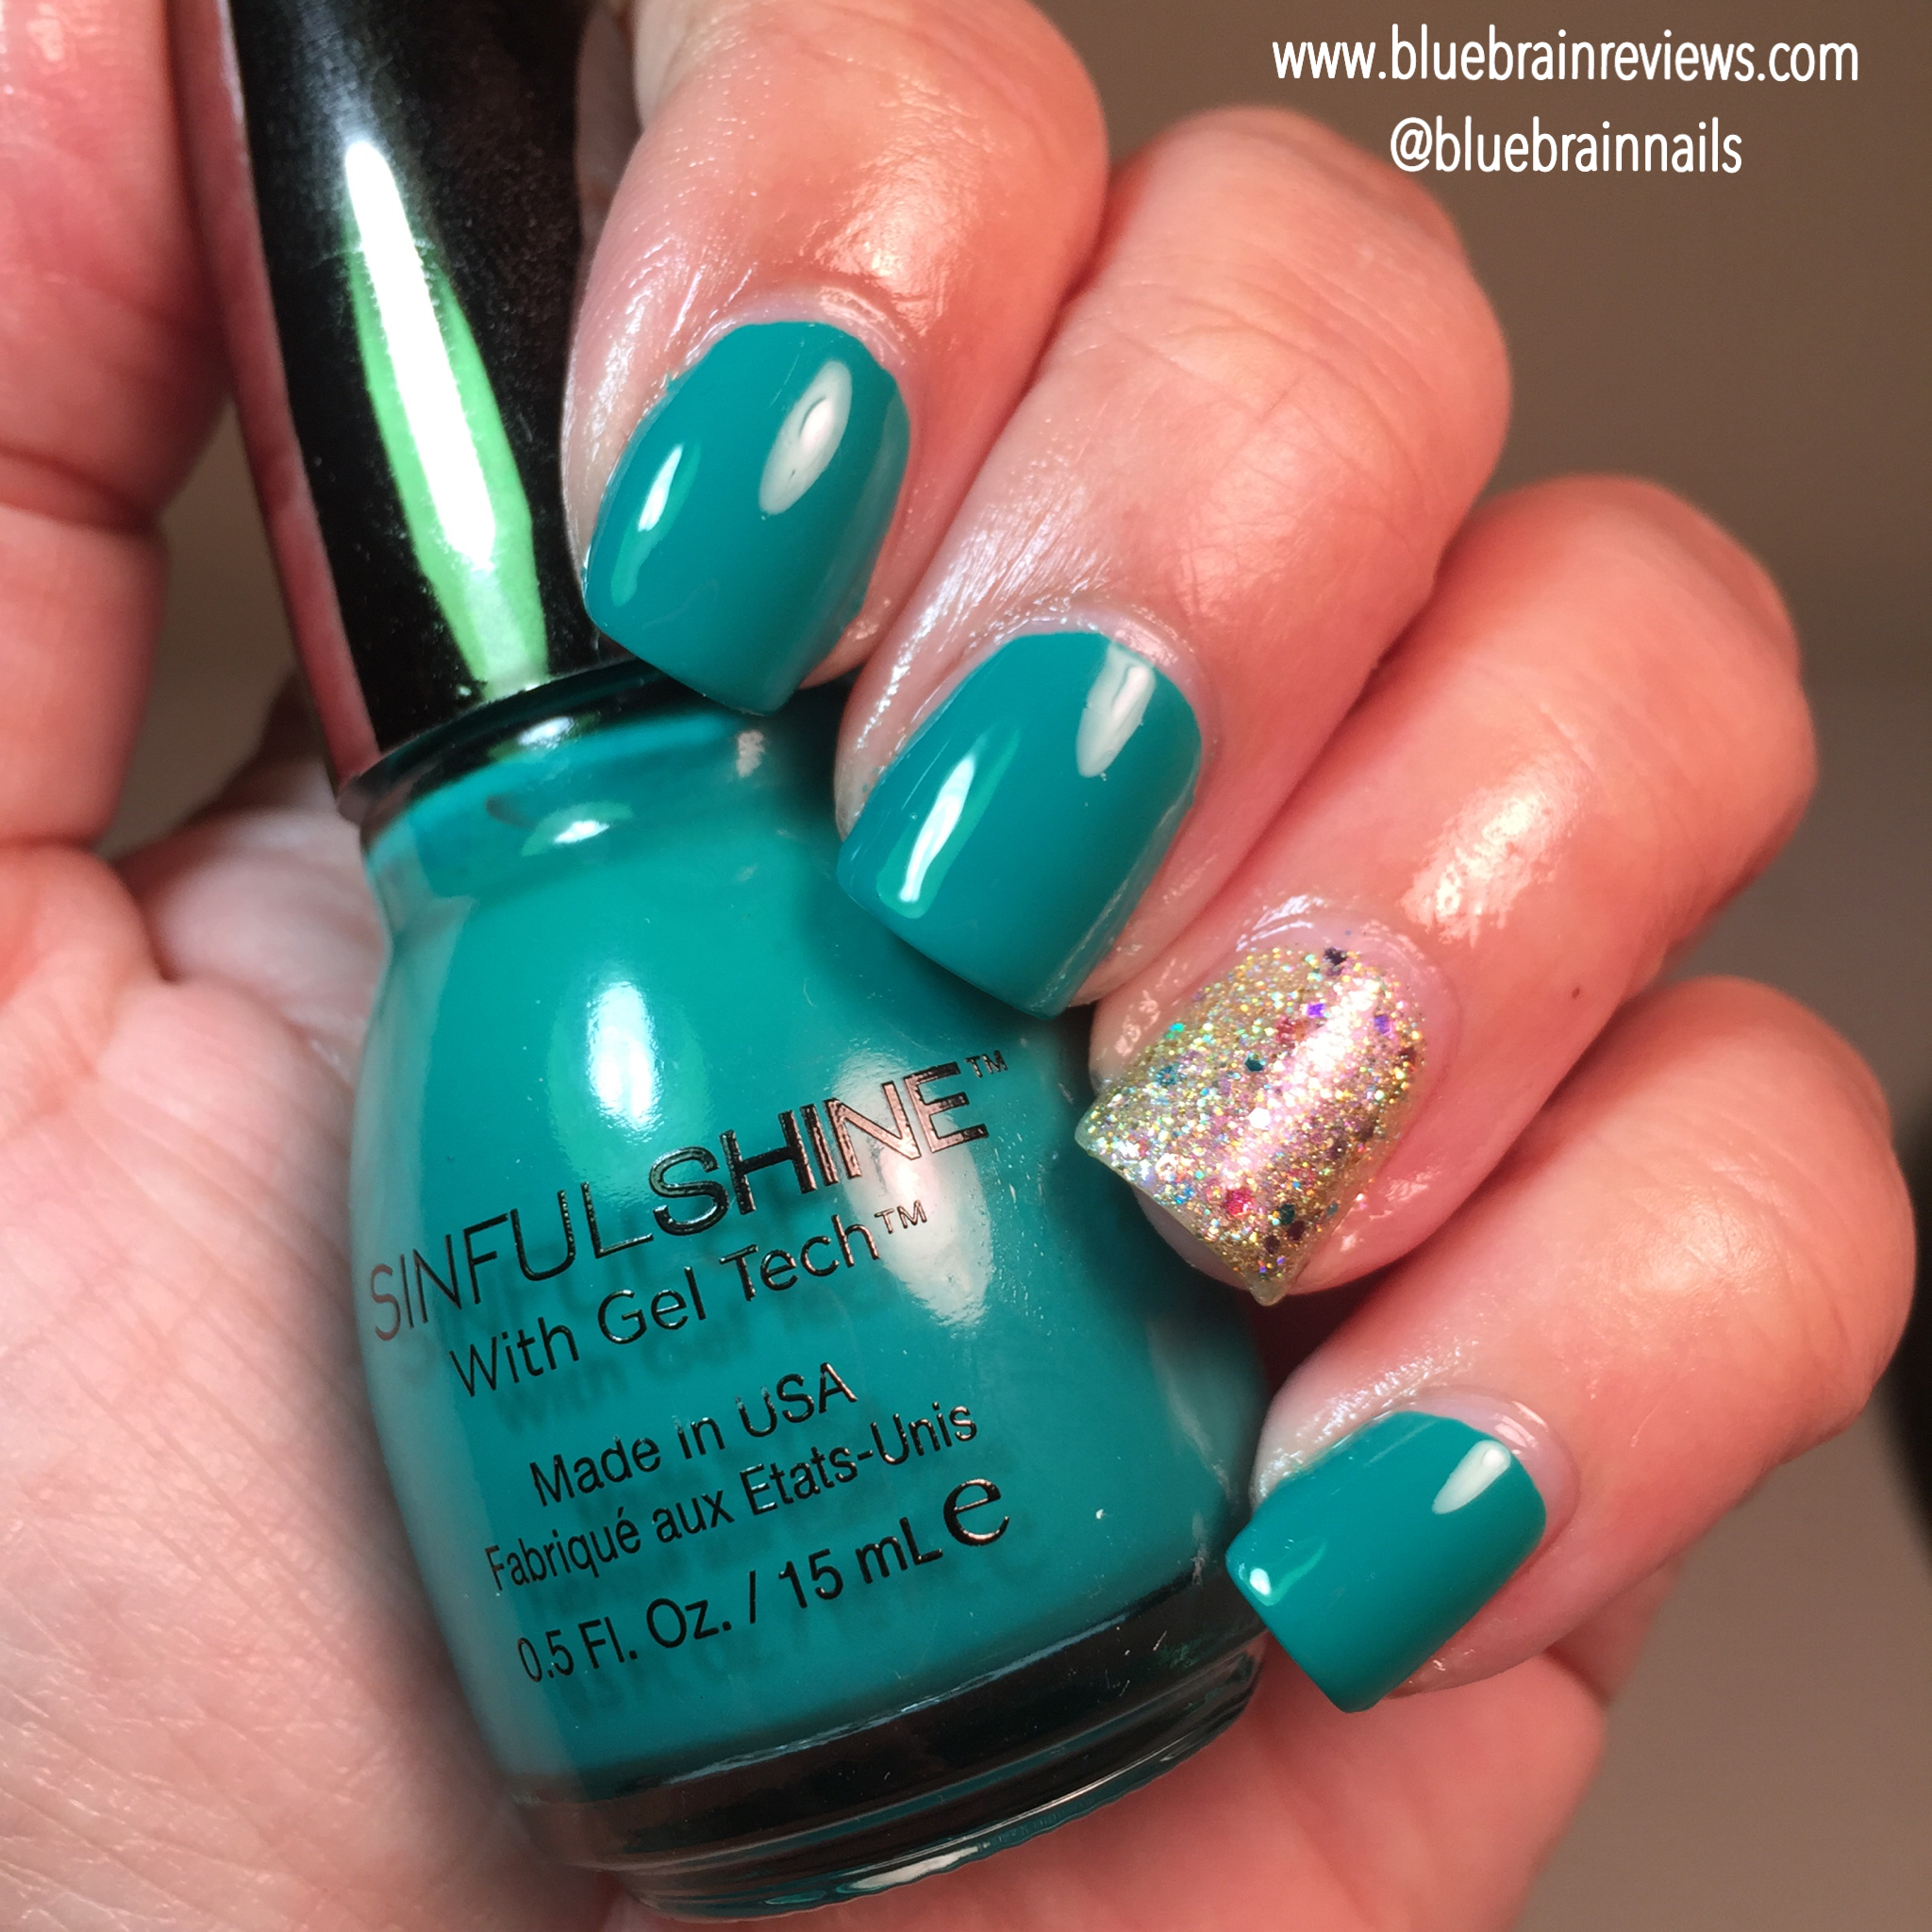 Nail Polish Tips: SinfulShine With Gel Tech